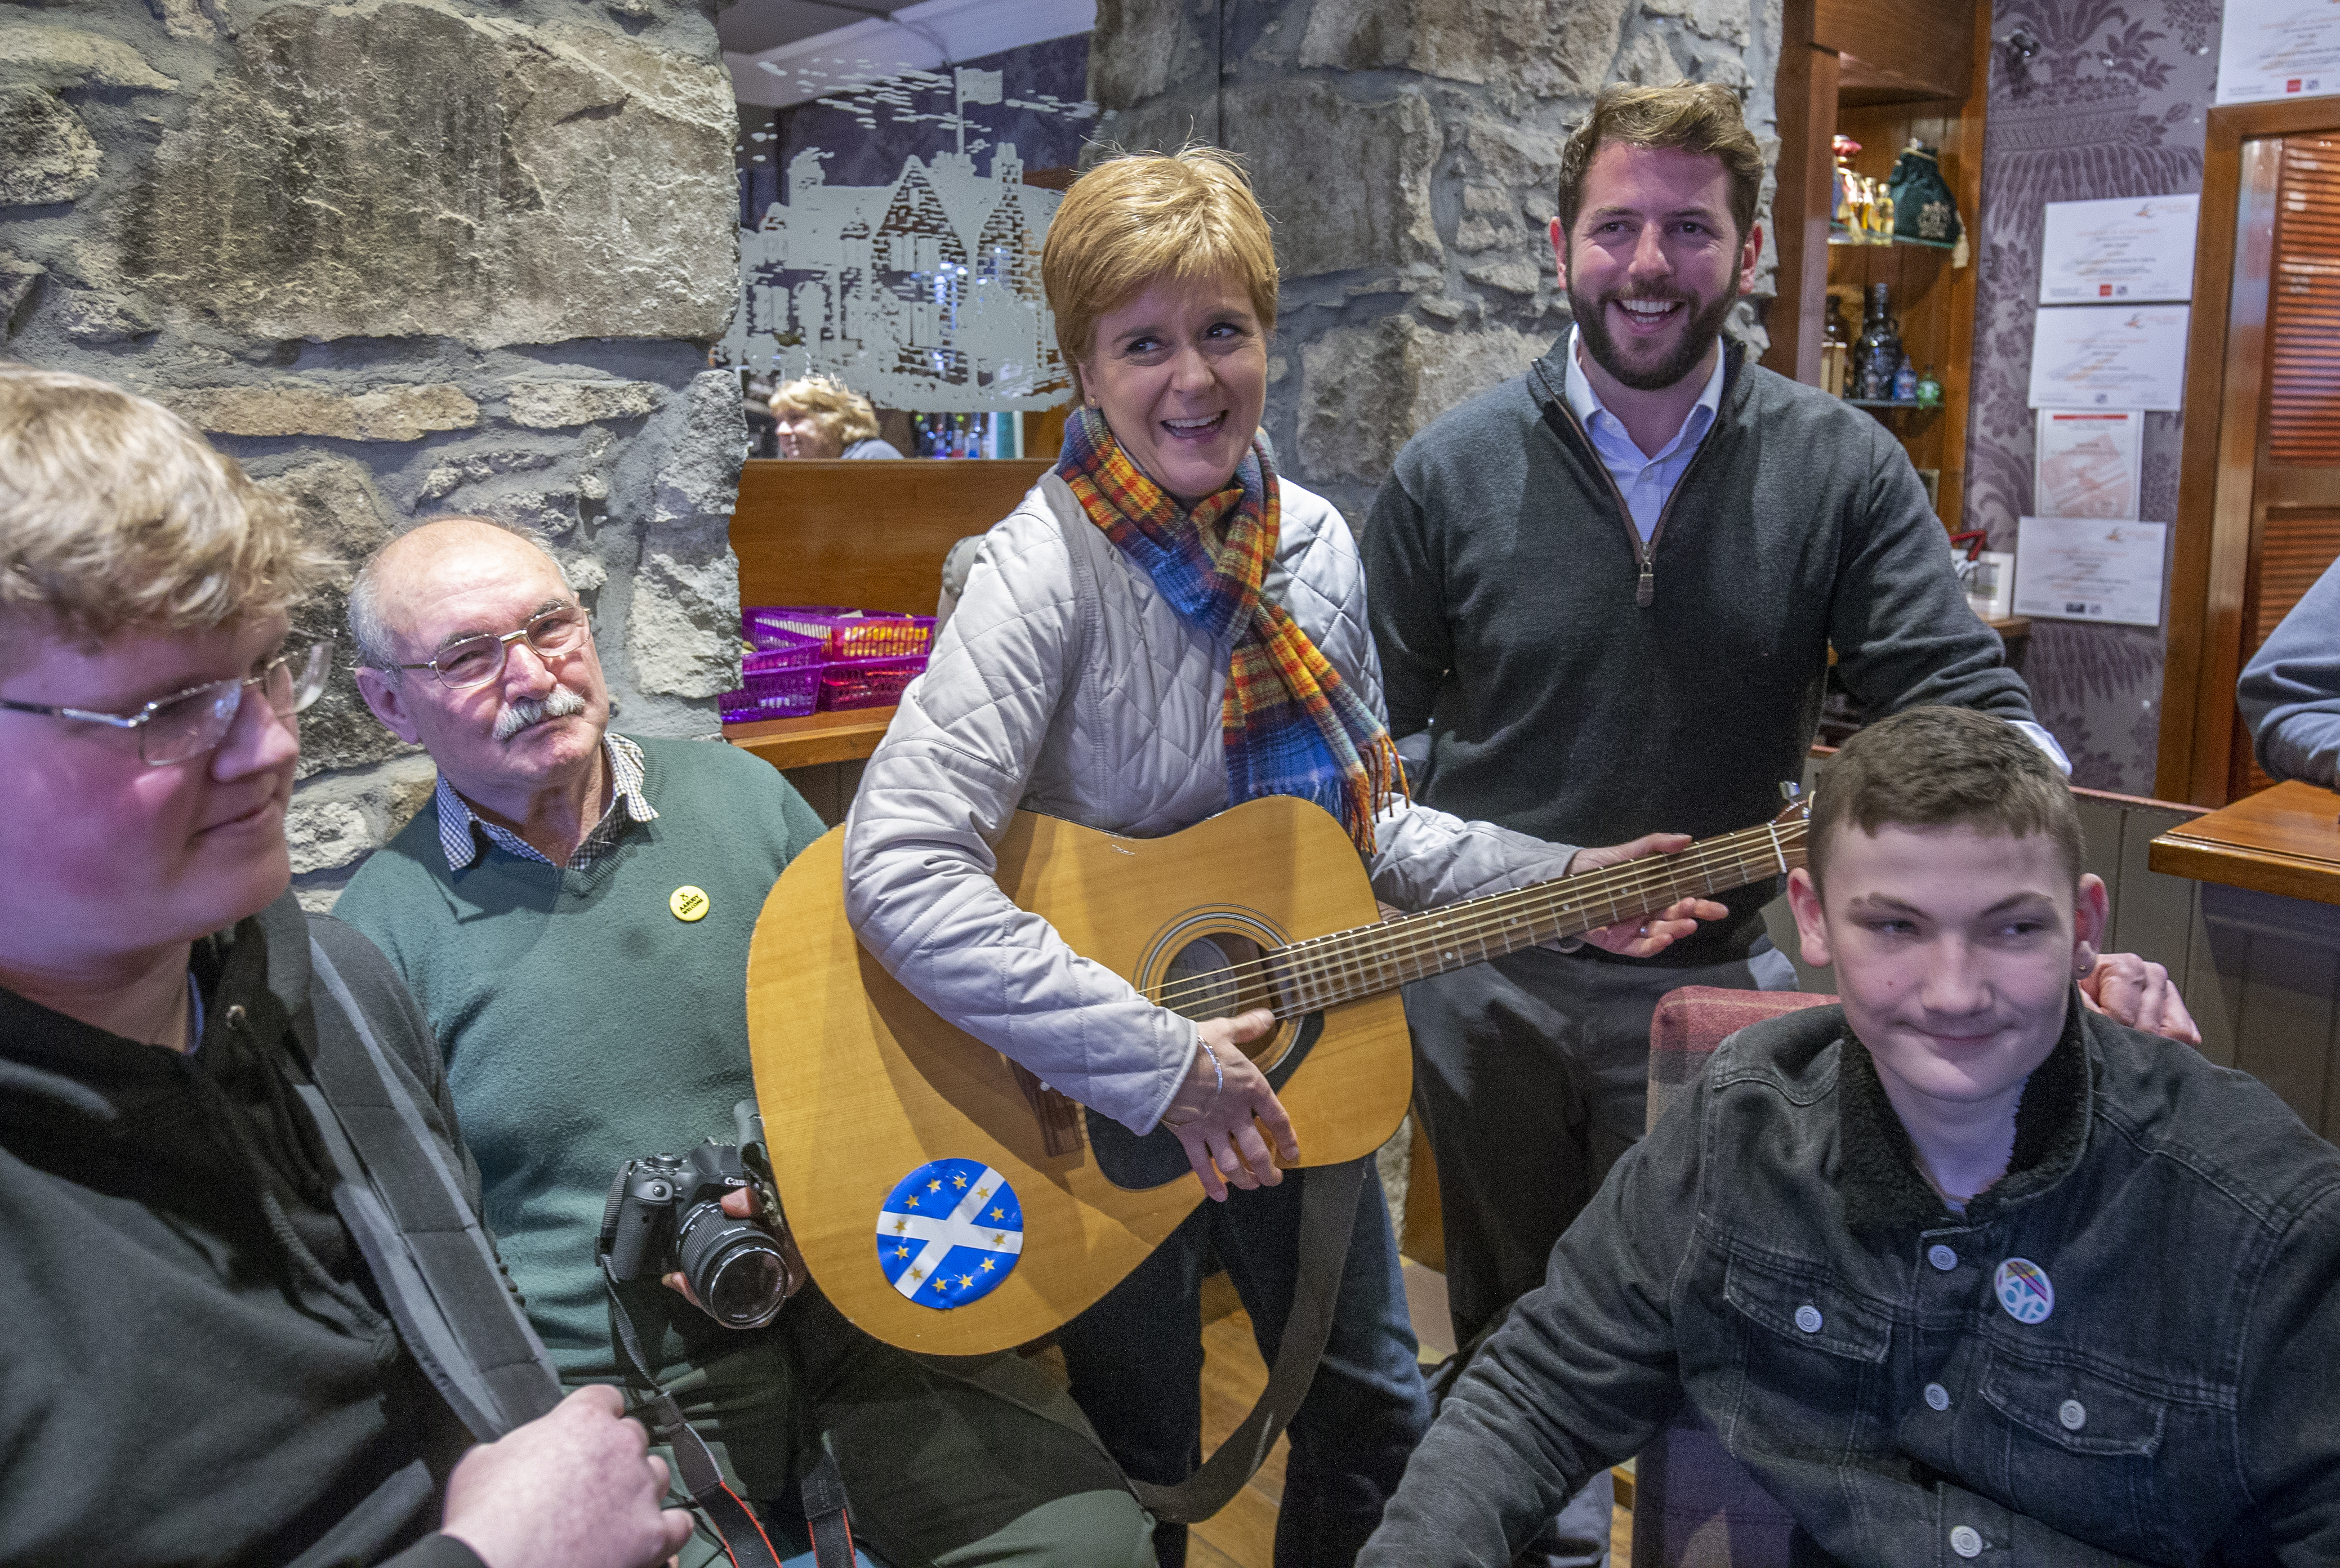 SNP leader Nicola Sturgeon and SNP candidate for Aberdeenshire West and Kincardine Fergus Mutch (centre right) take part in a traditional music workshop at the Burnett Arms Hotel, Kemnay, Aberdeenshire, on the General Election campaign trail.